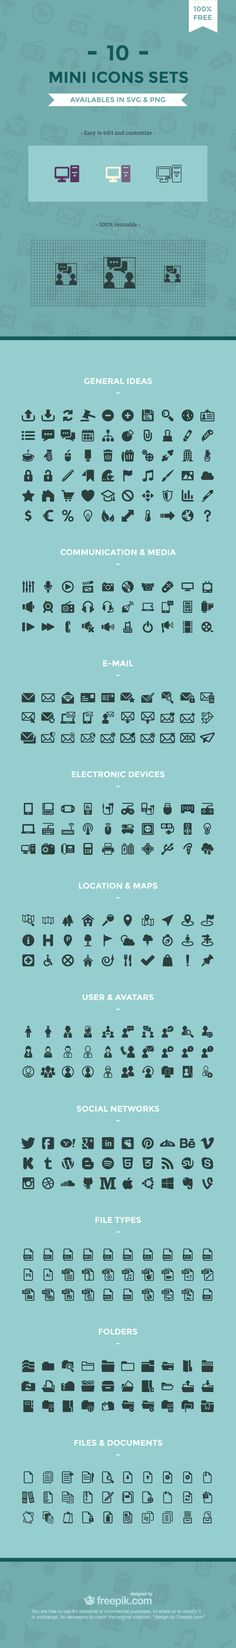 Free Minimal Icon Sets [.SVG + .PNG] http://blog.templatemonster.com/2015/06/10/free-minimal-icon-sets/?utm_source=pinterest&utm_medium=timeline&utm_campaign=icfrset